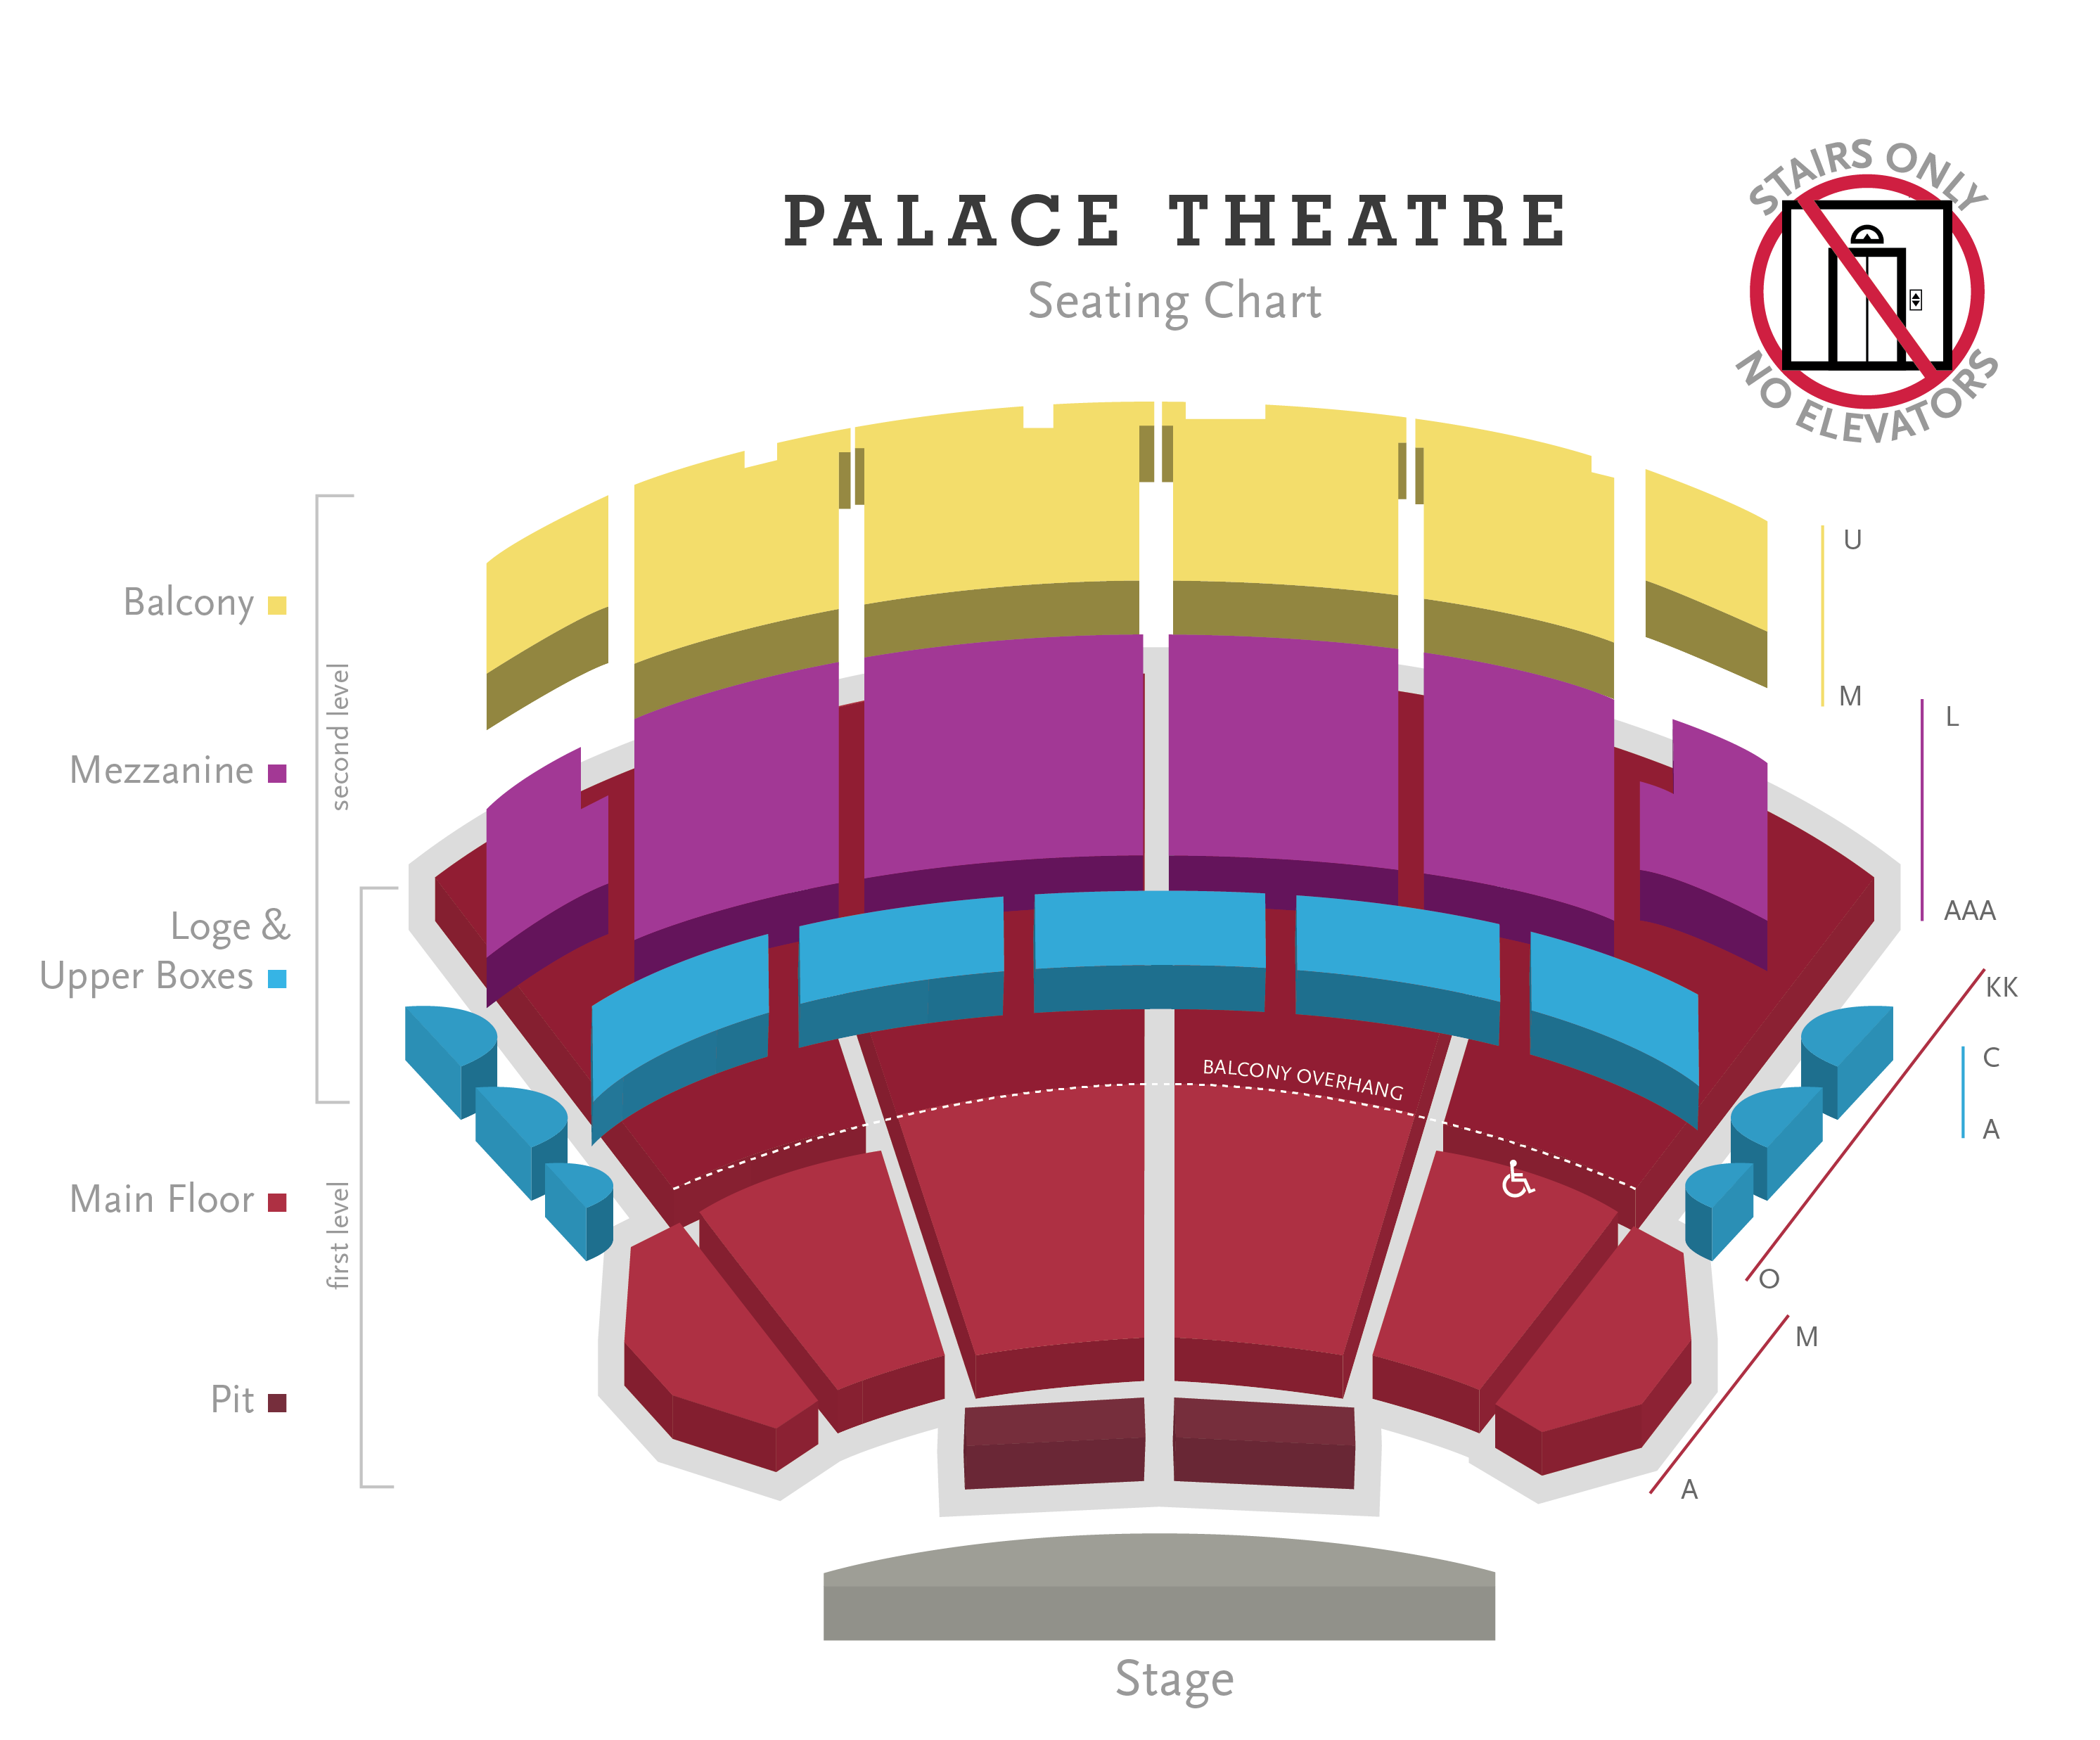 Palace Theatre Seating